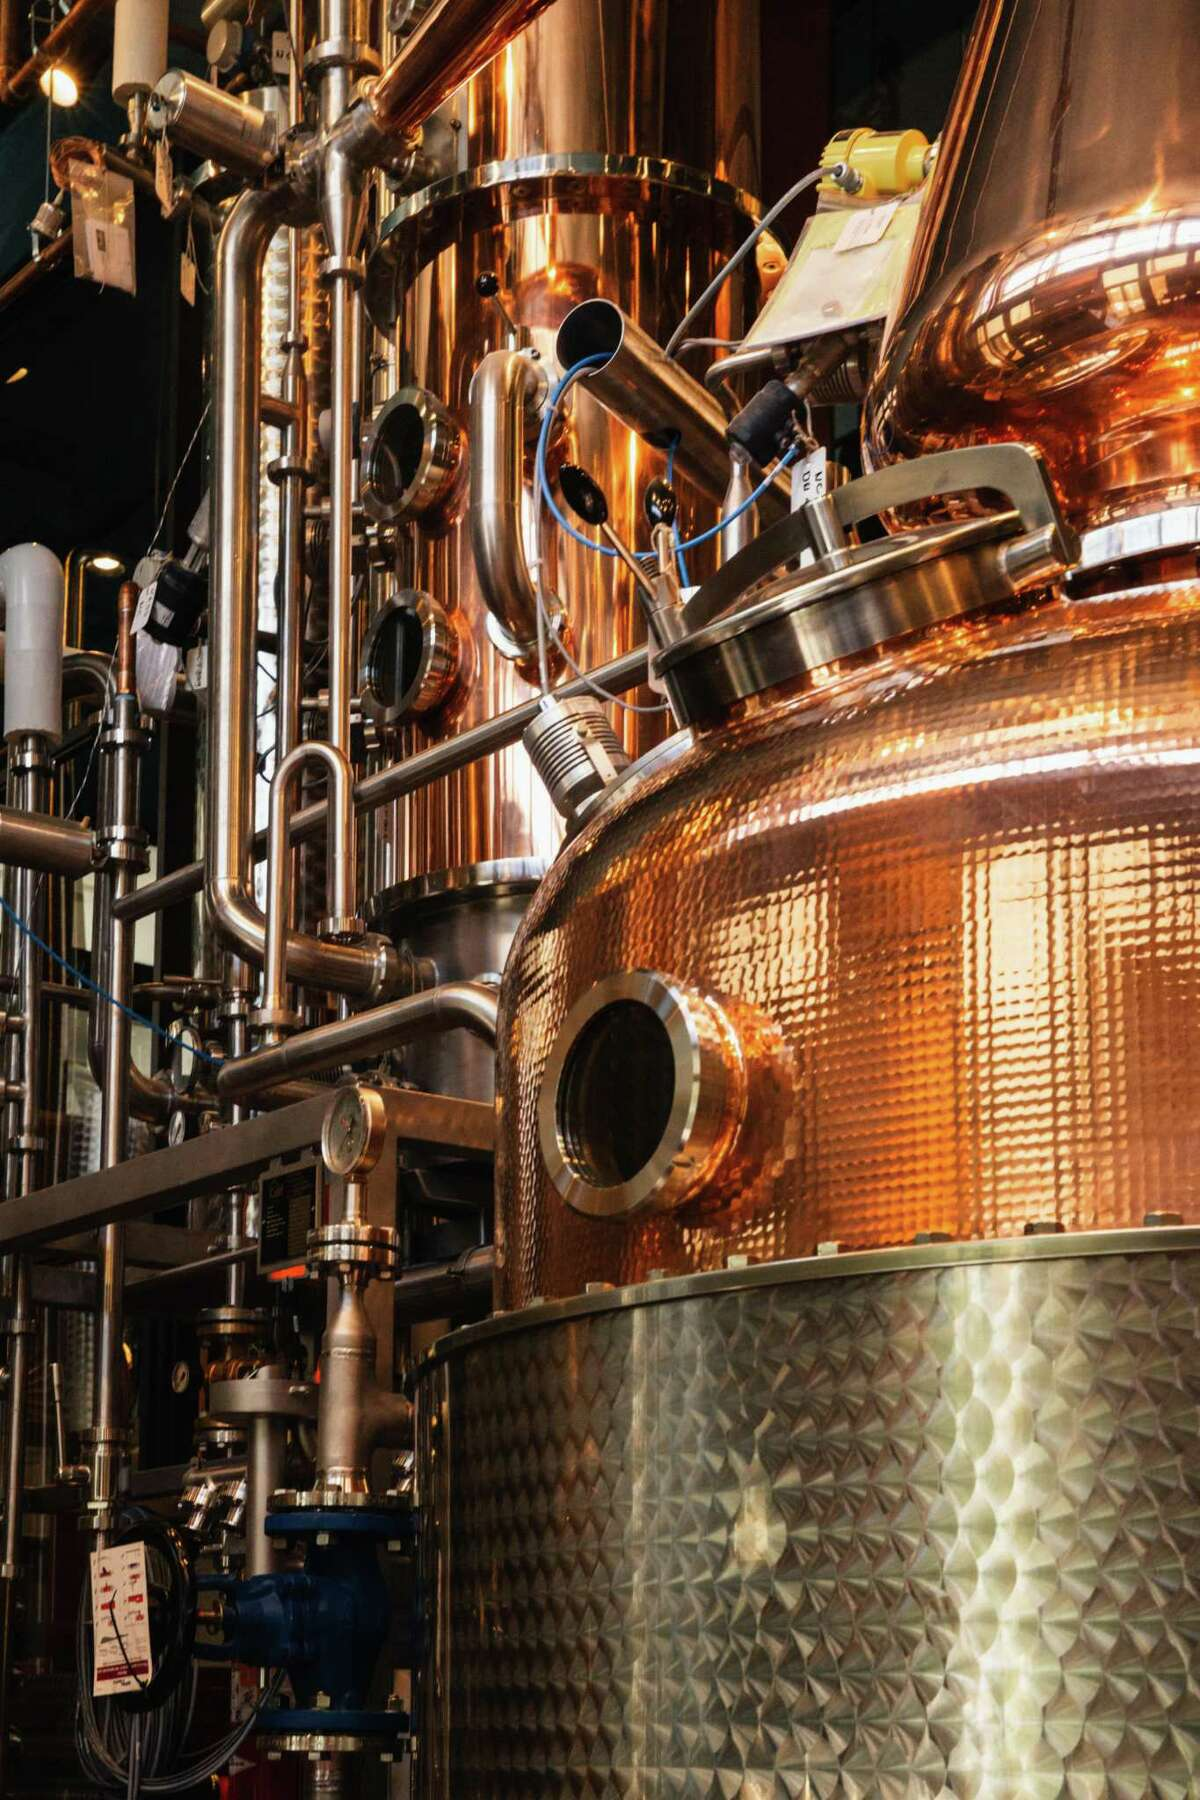 Devils River Distillery will offer tours of its new San Antonio location, opening in January.